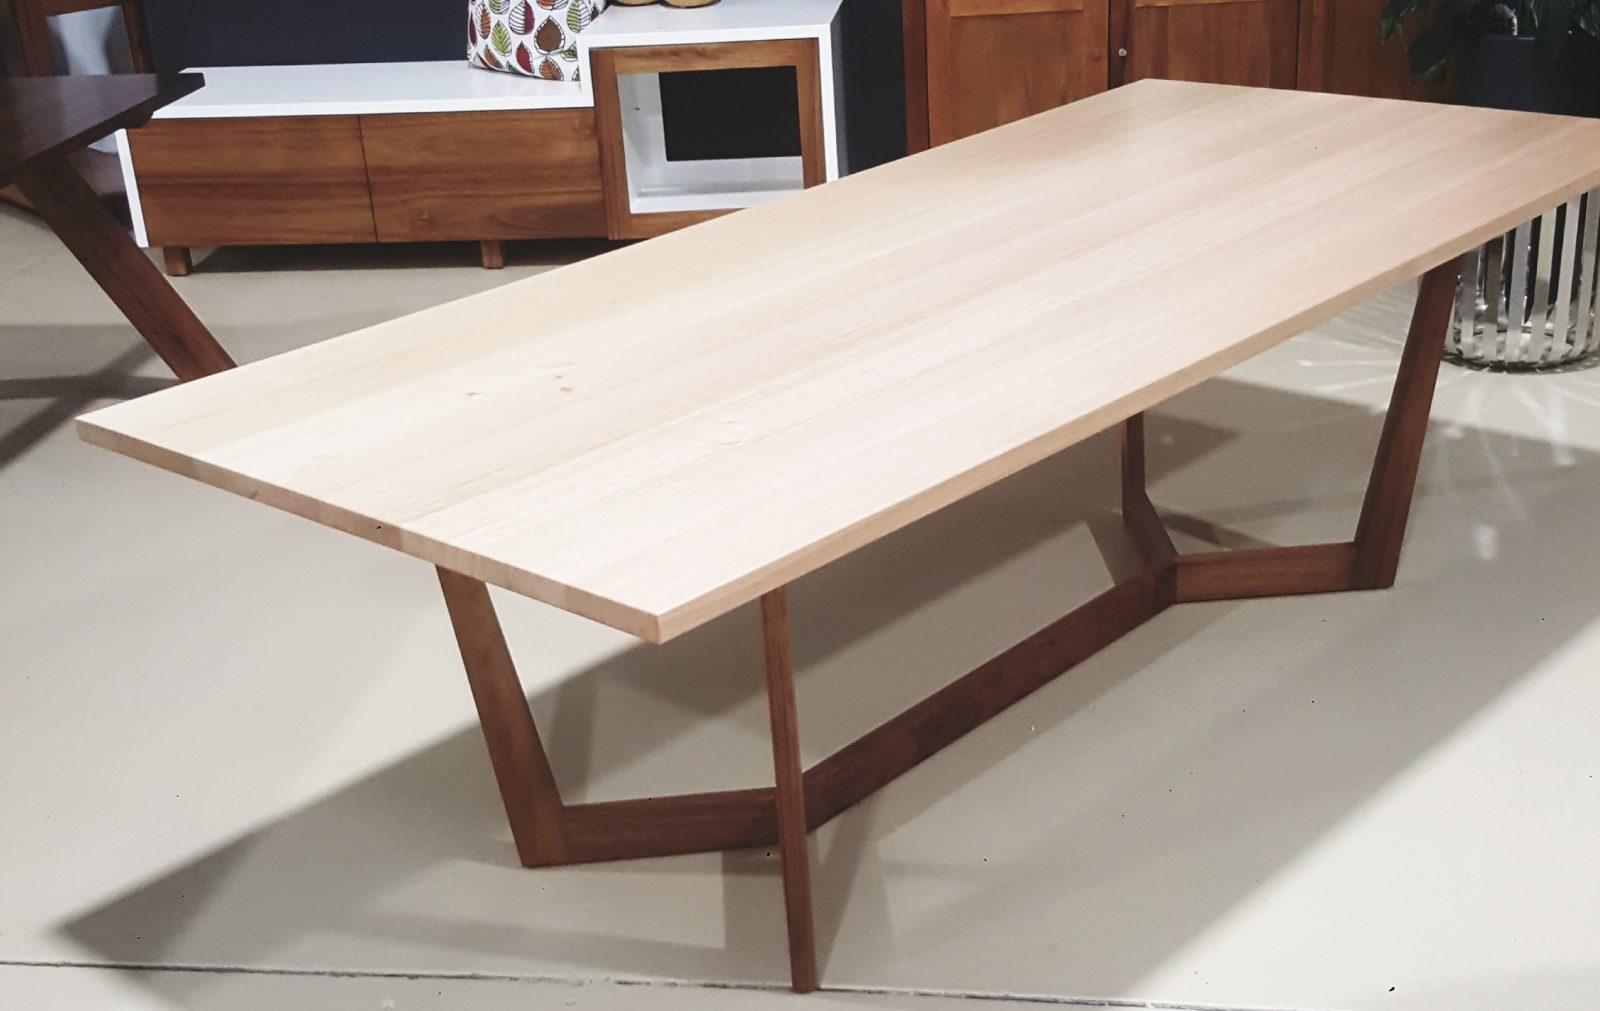 Magill Dining Table Image